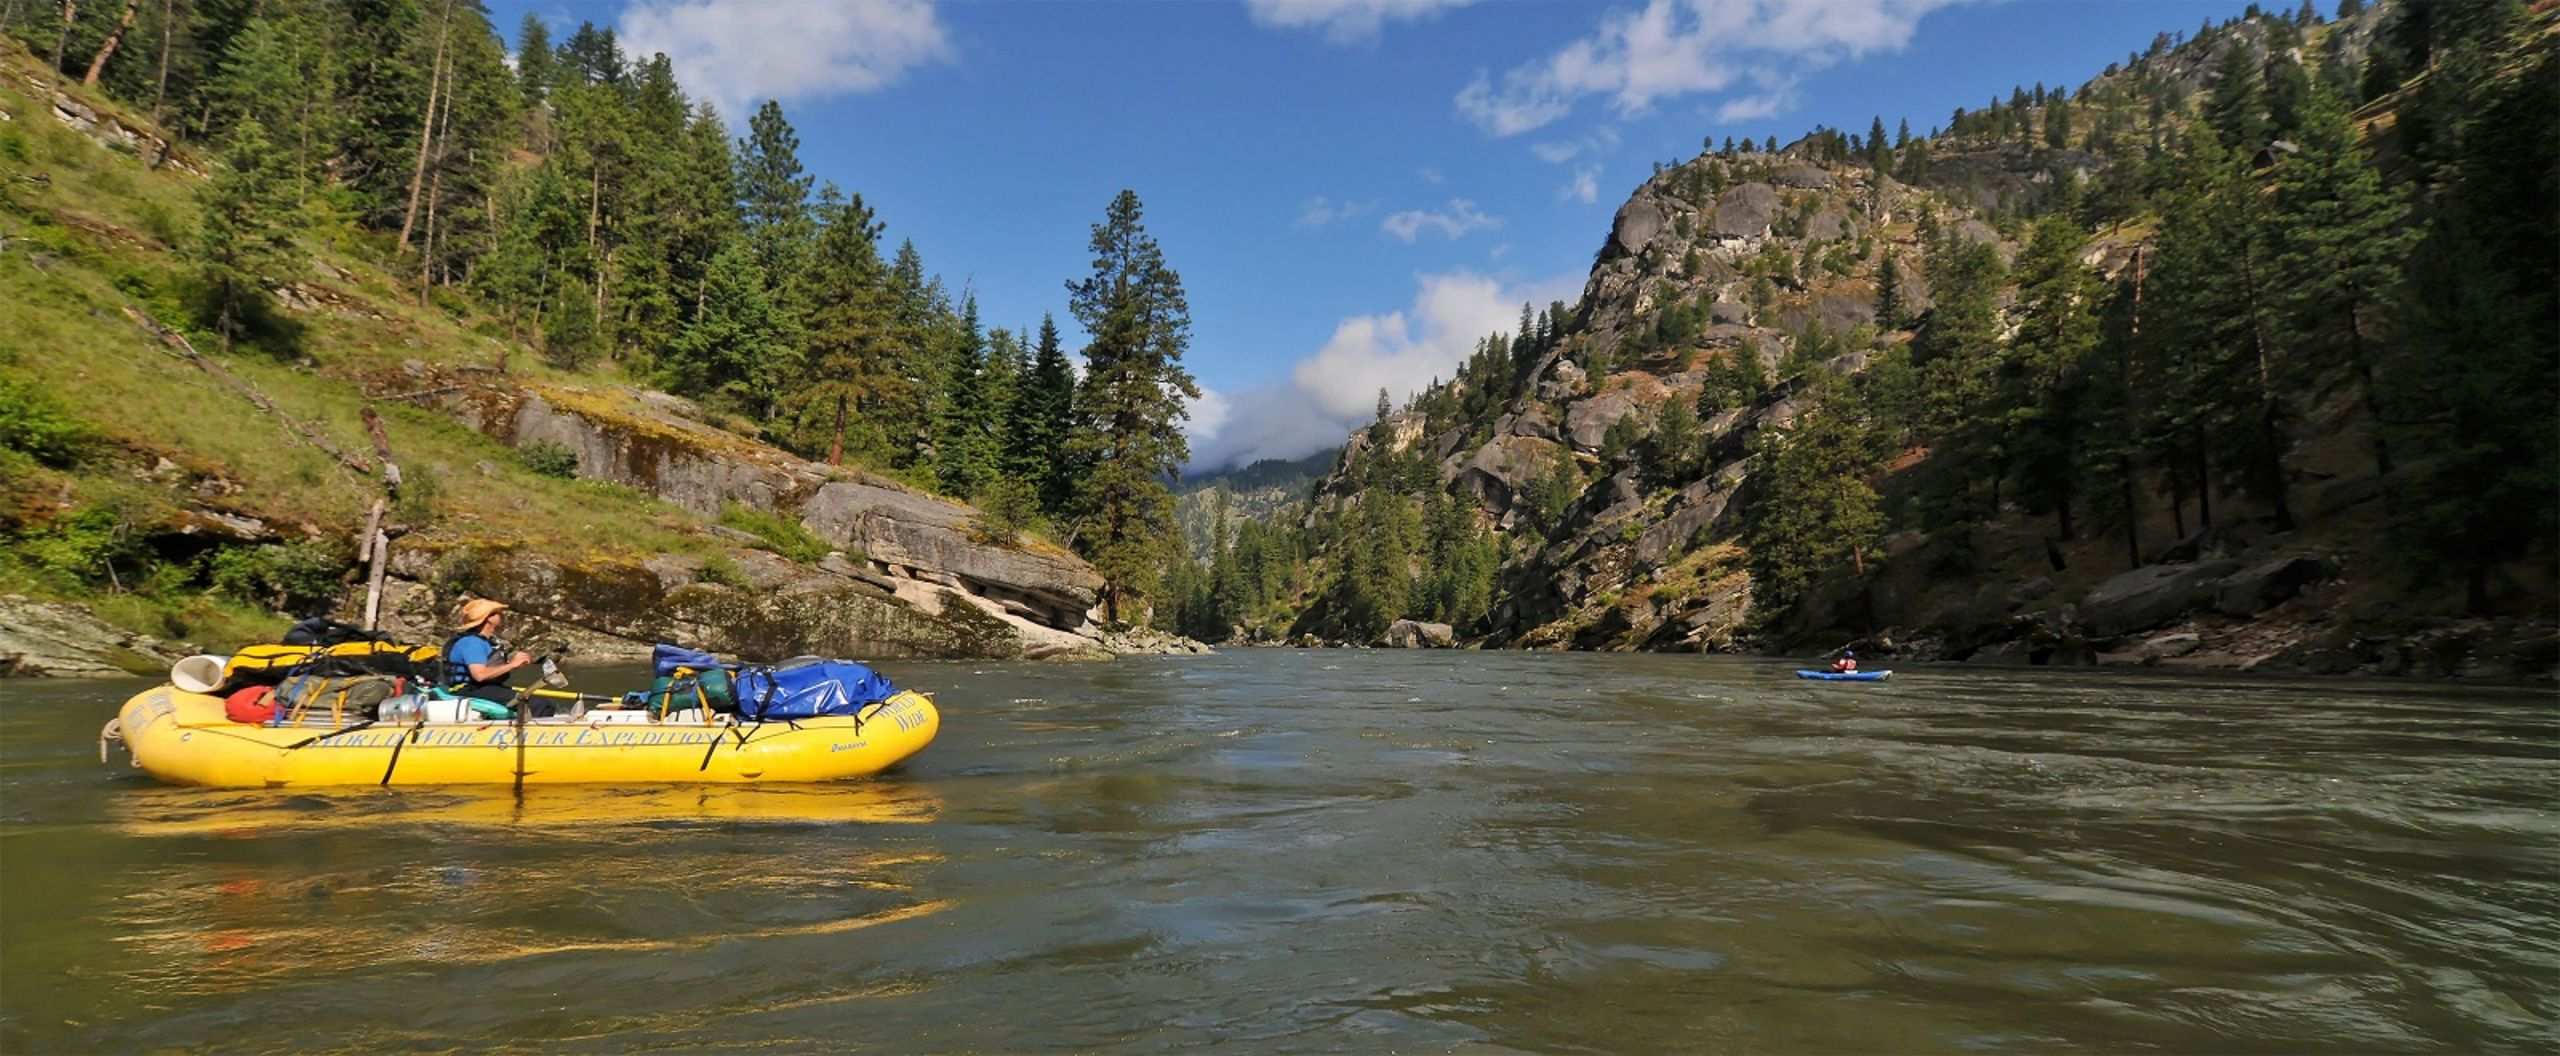 Experience all the thinks to do in Idaho